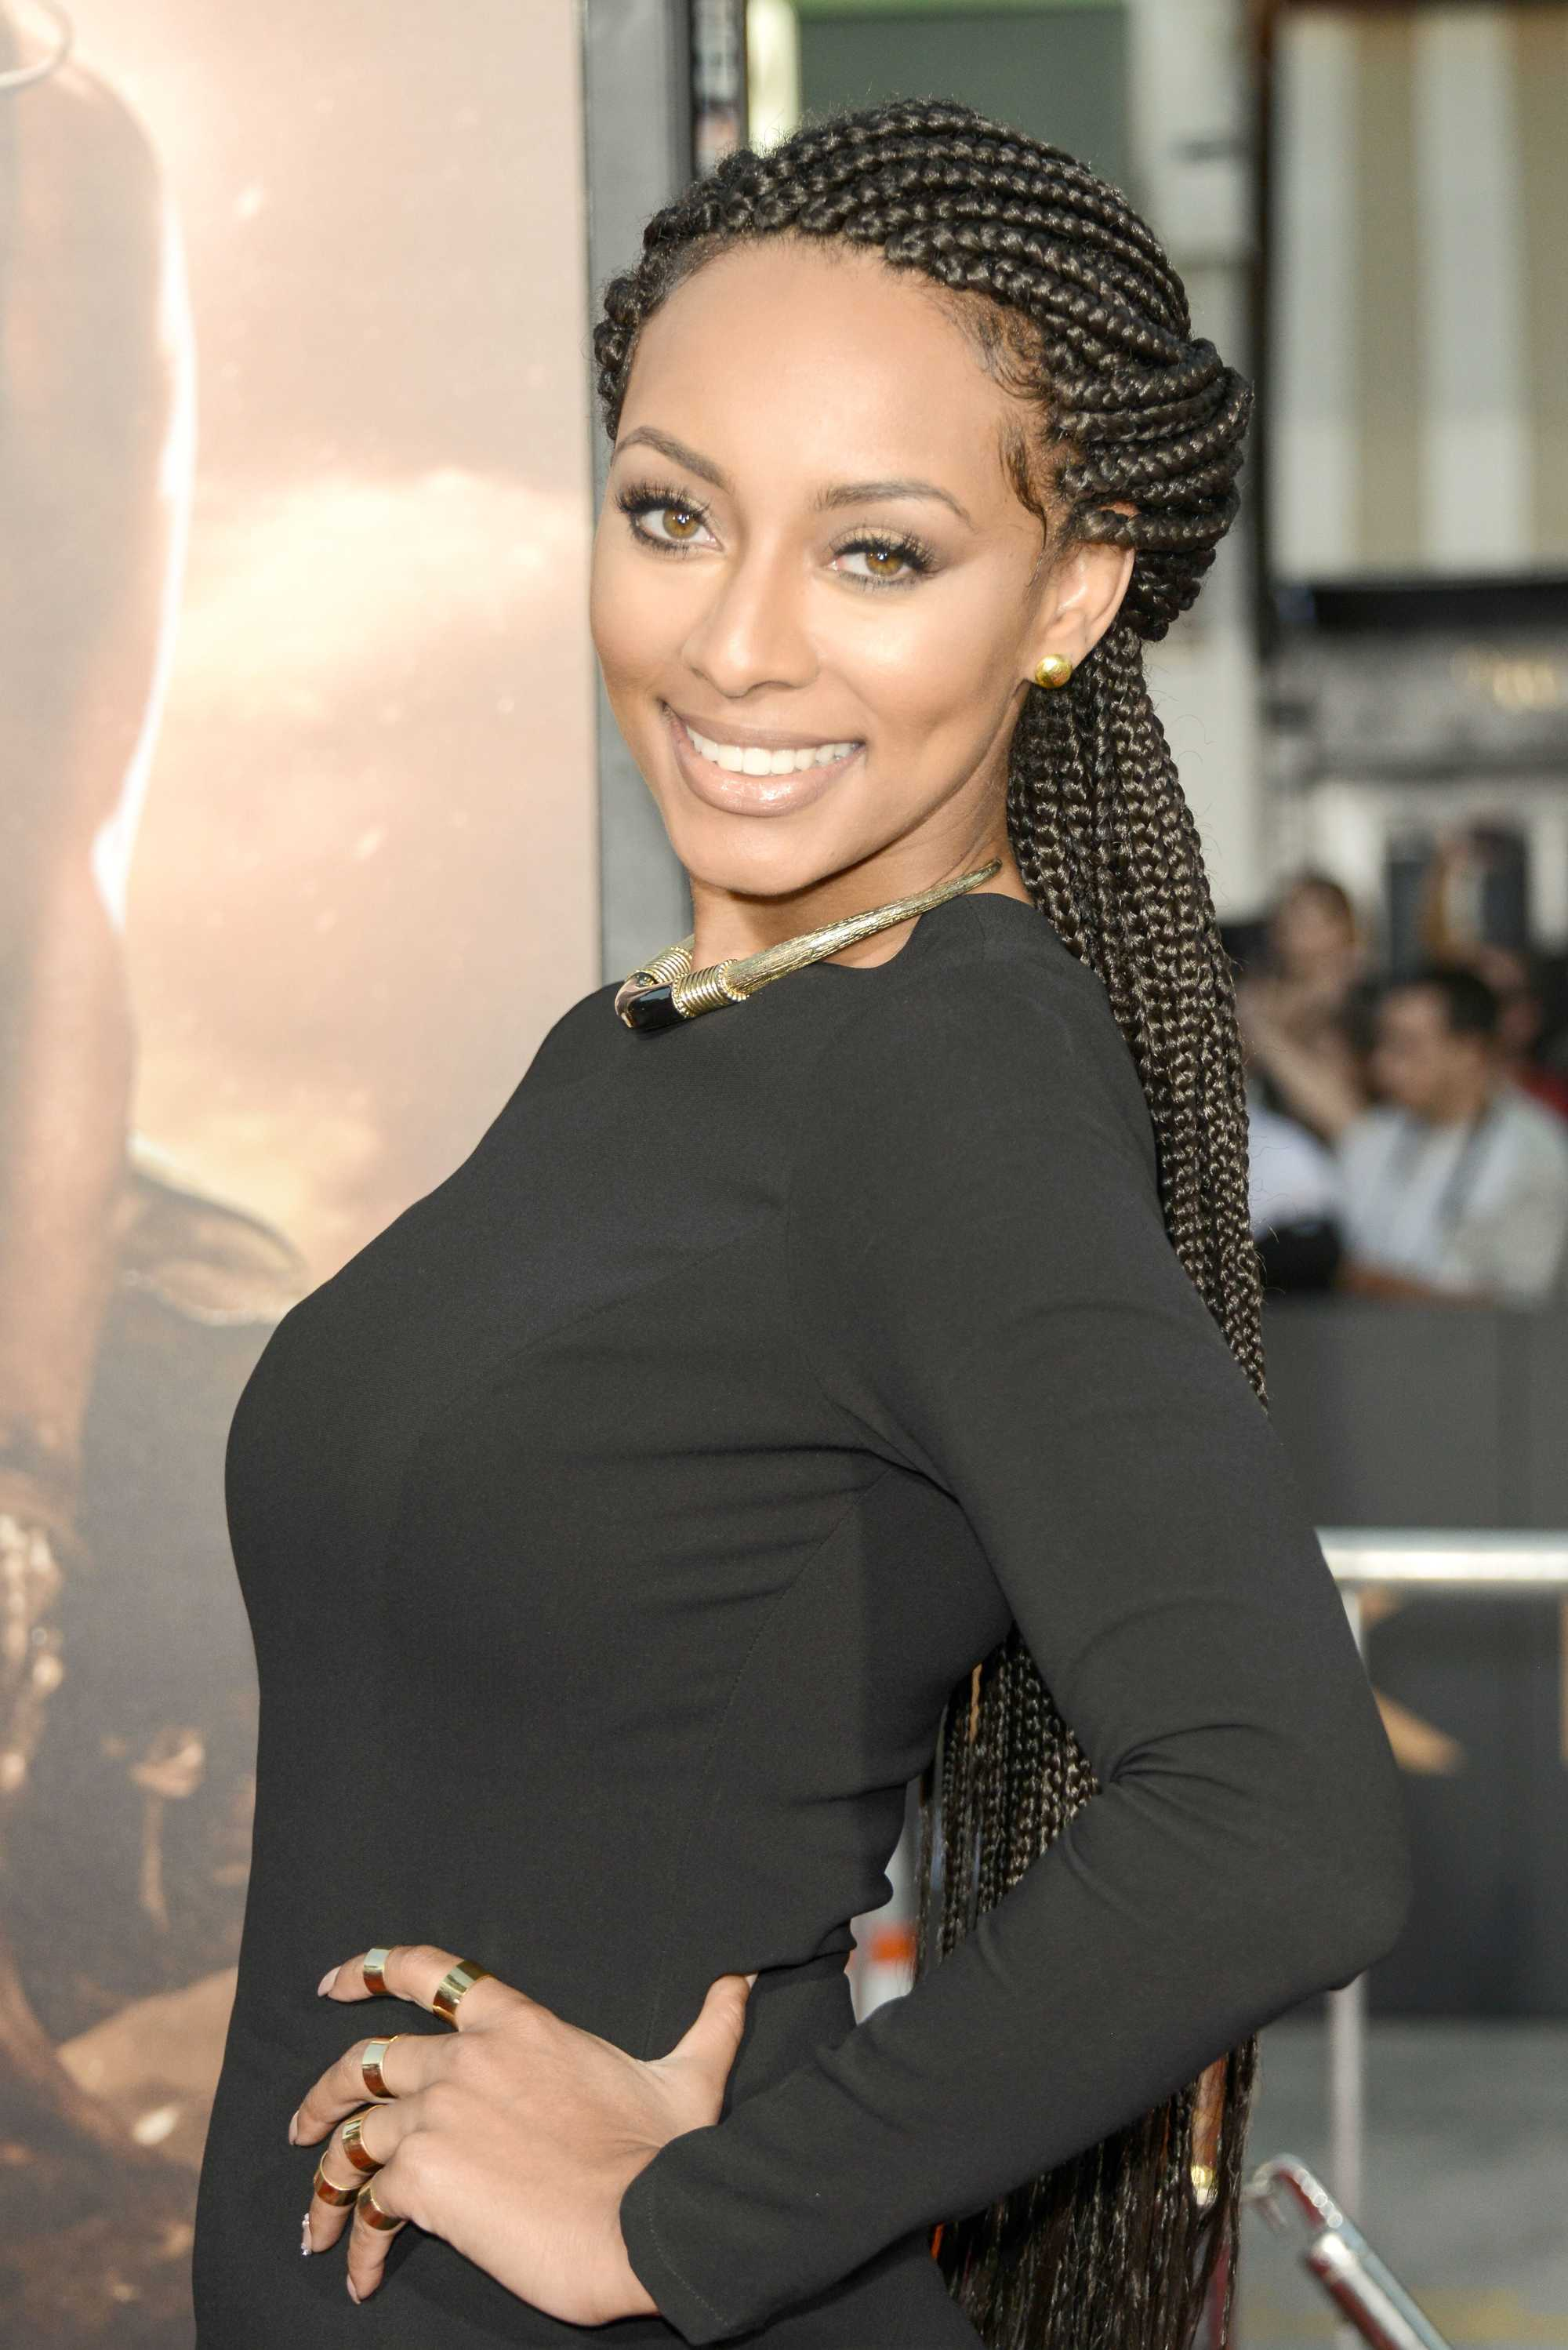 Keri Hilson With Poetic Justice Braids Styled Into A Half Up Hairstyle Red  Carpet